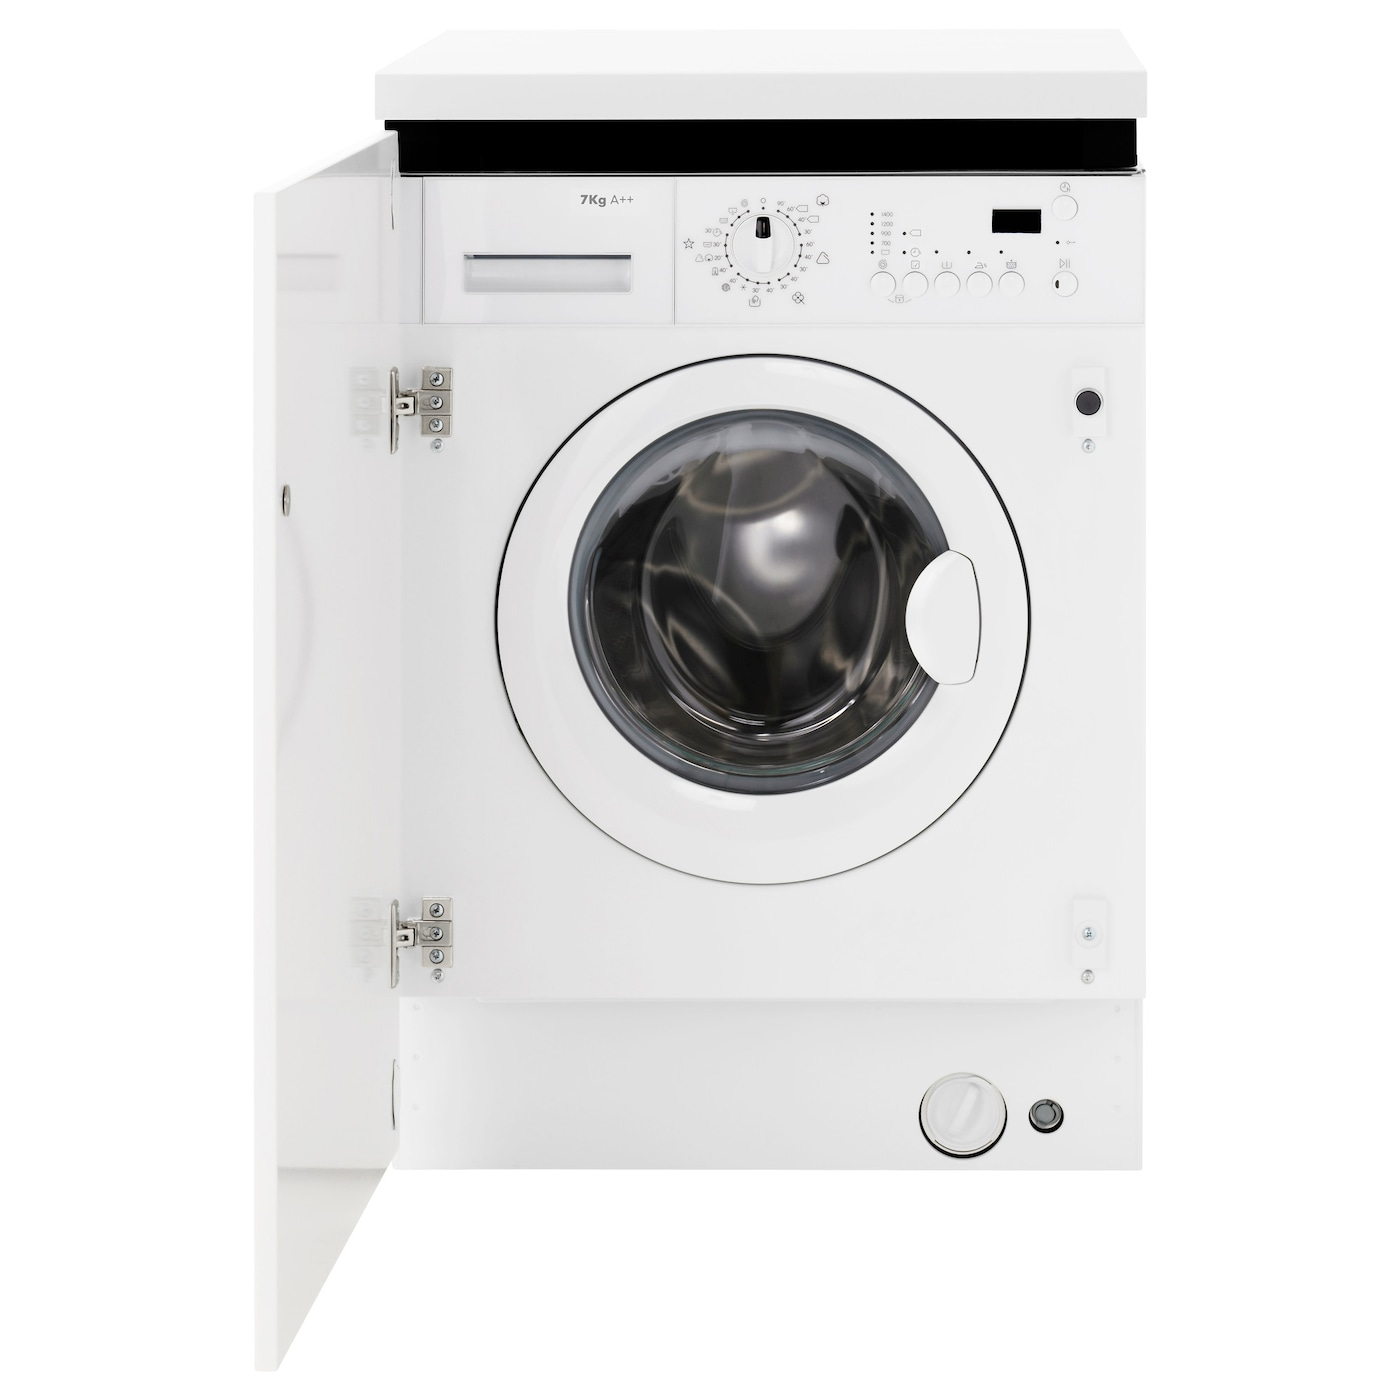 Washing Machines Integrated Washing Machines Ikea